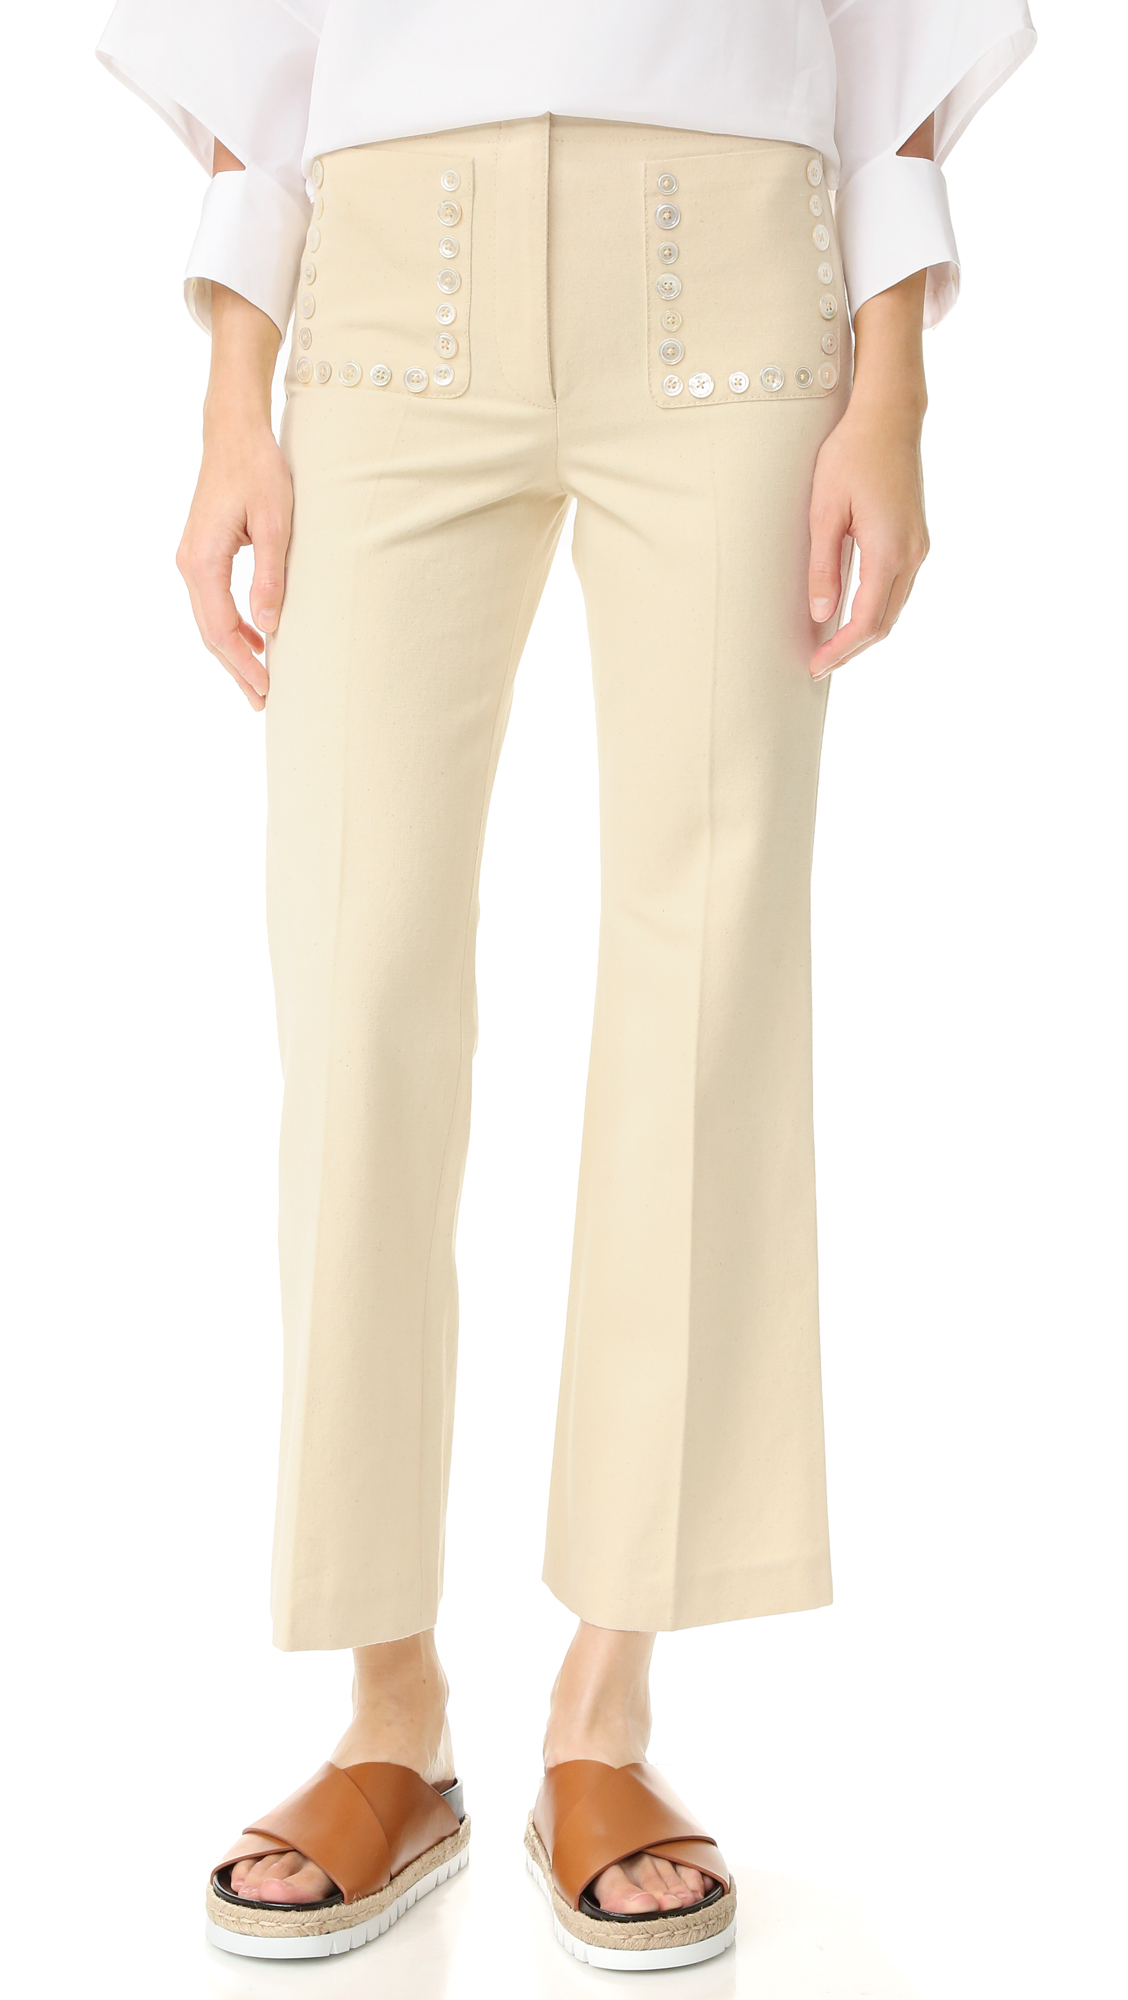 Edun Flare Pants - Ecru at Shopbop